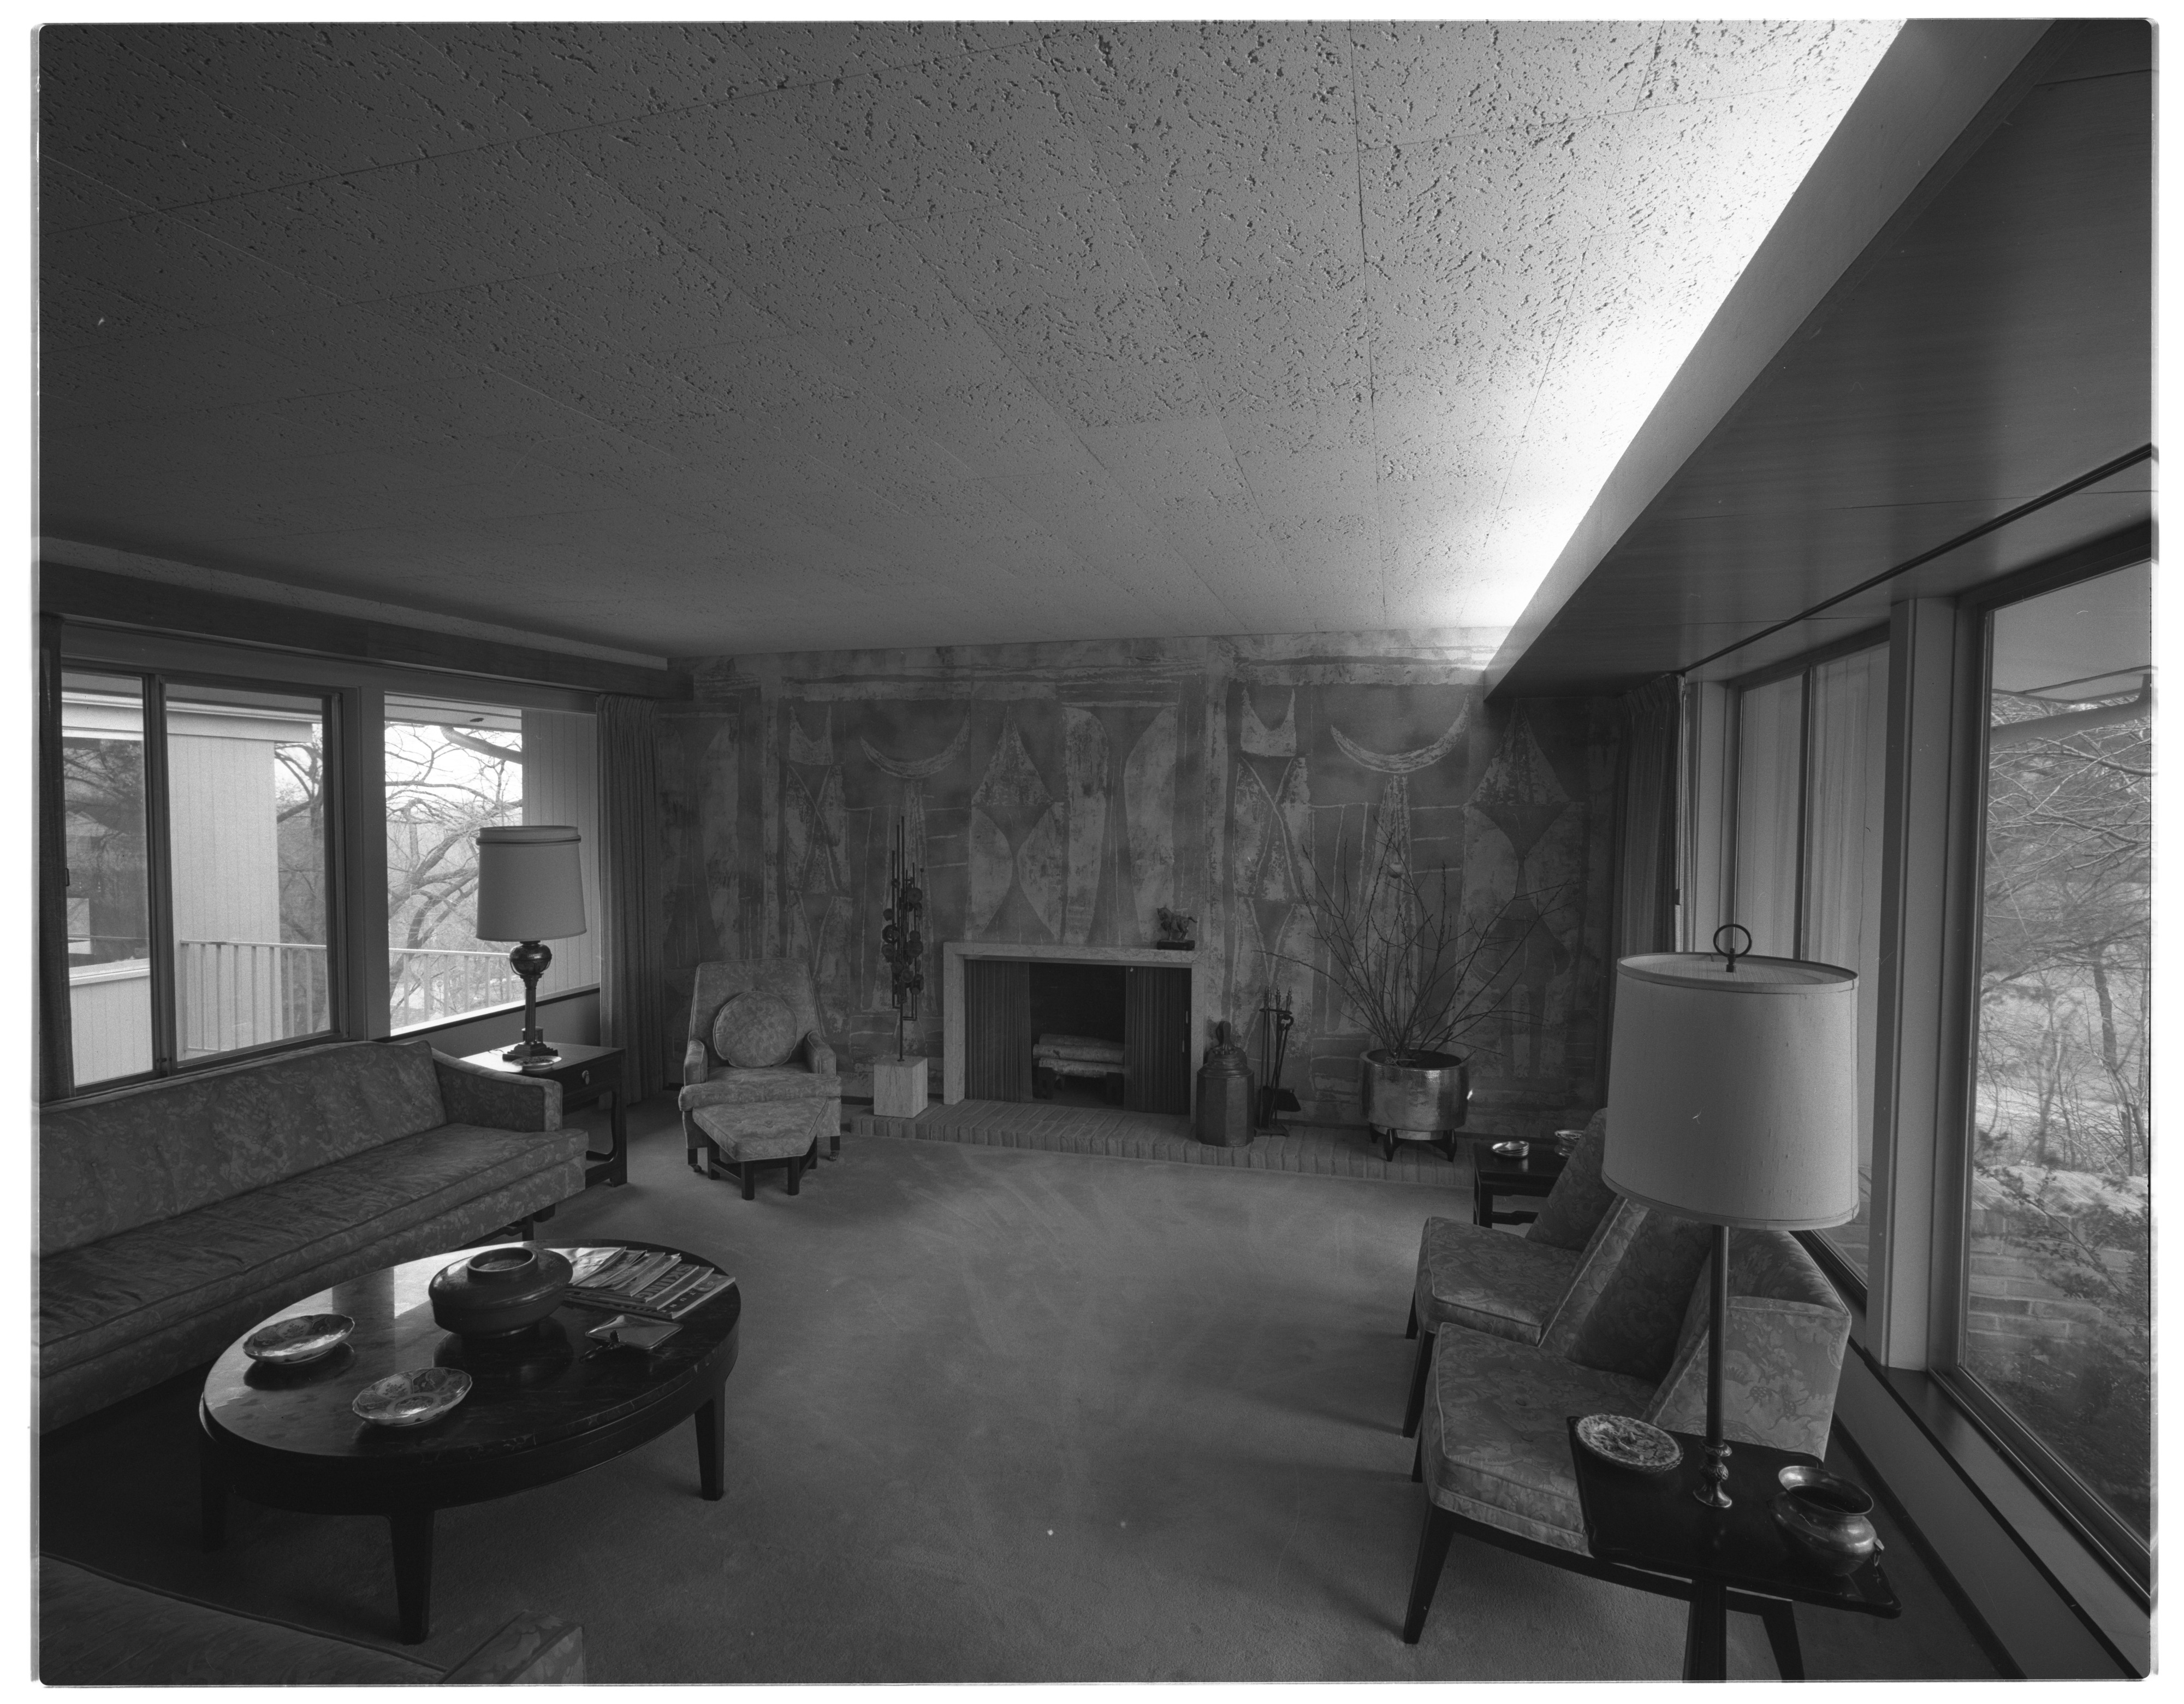 Windows Frame Living Room of Mrs. Henry Wege Home, April 1969 image